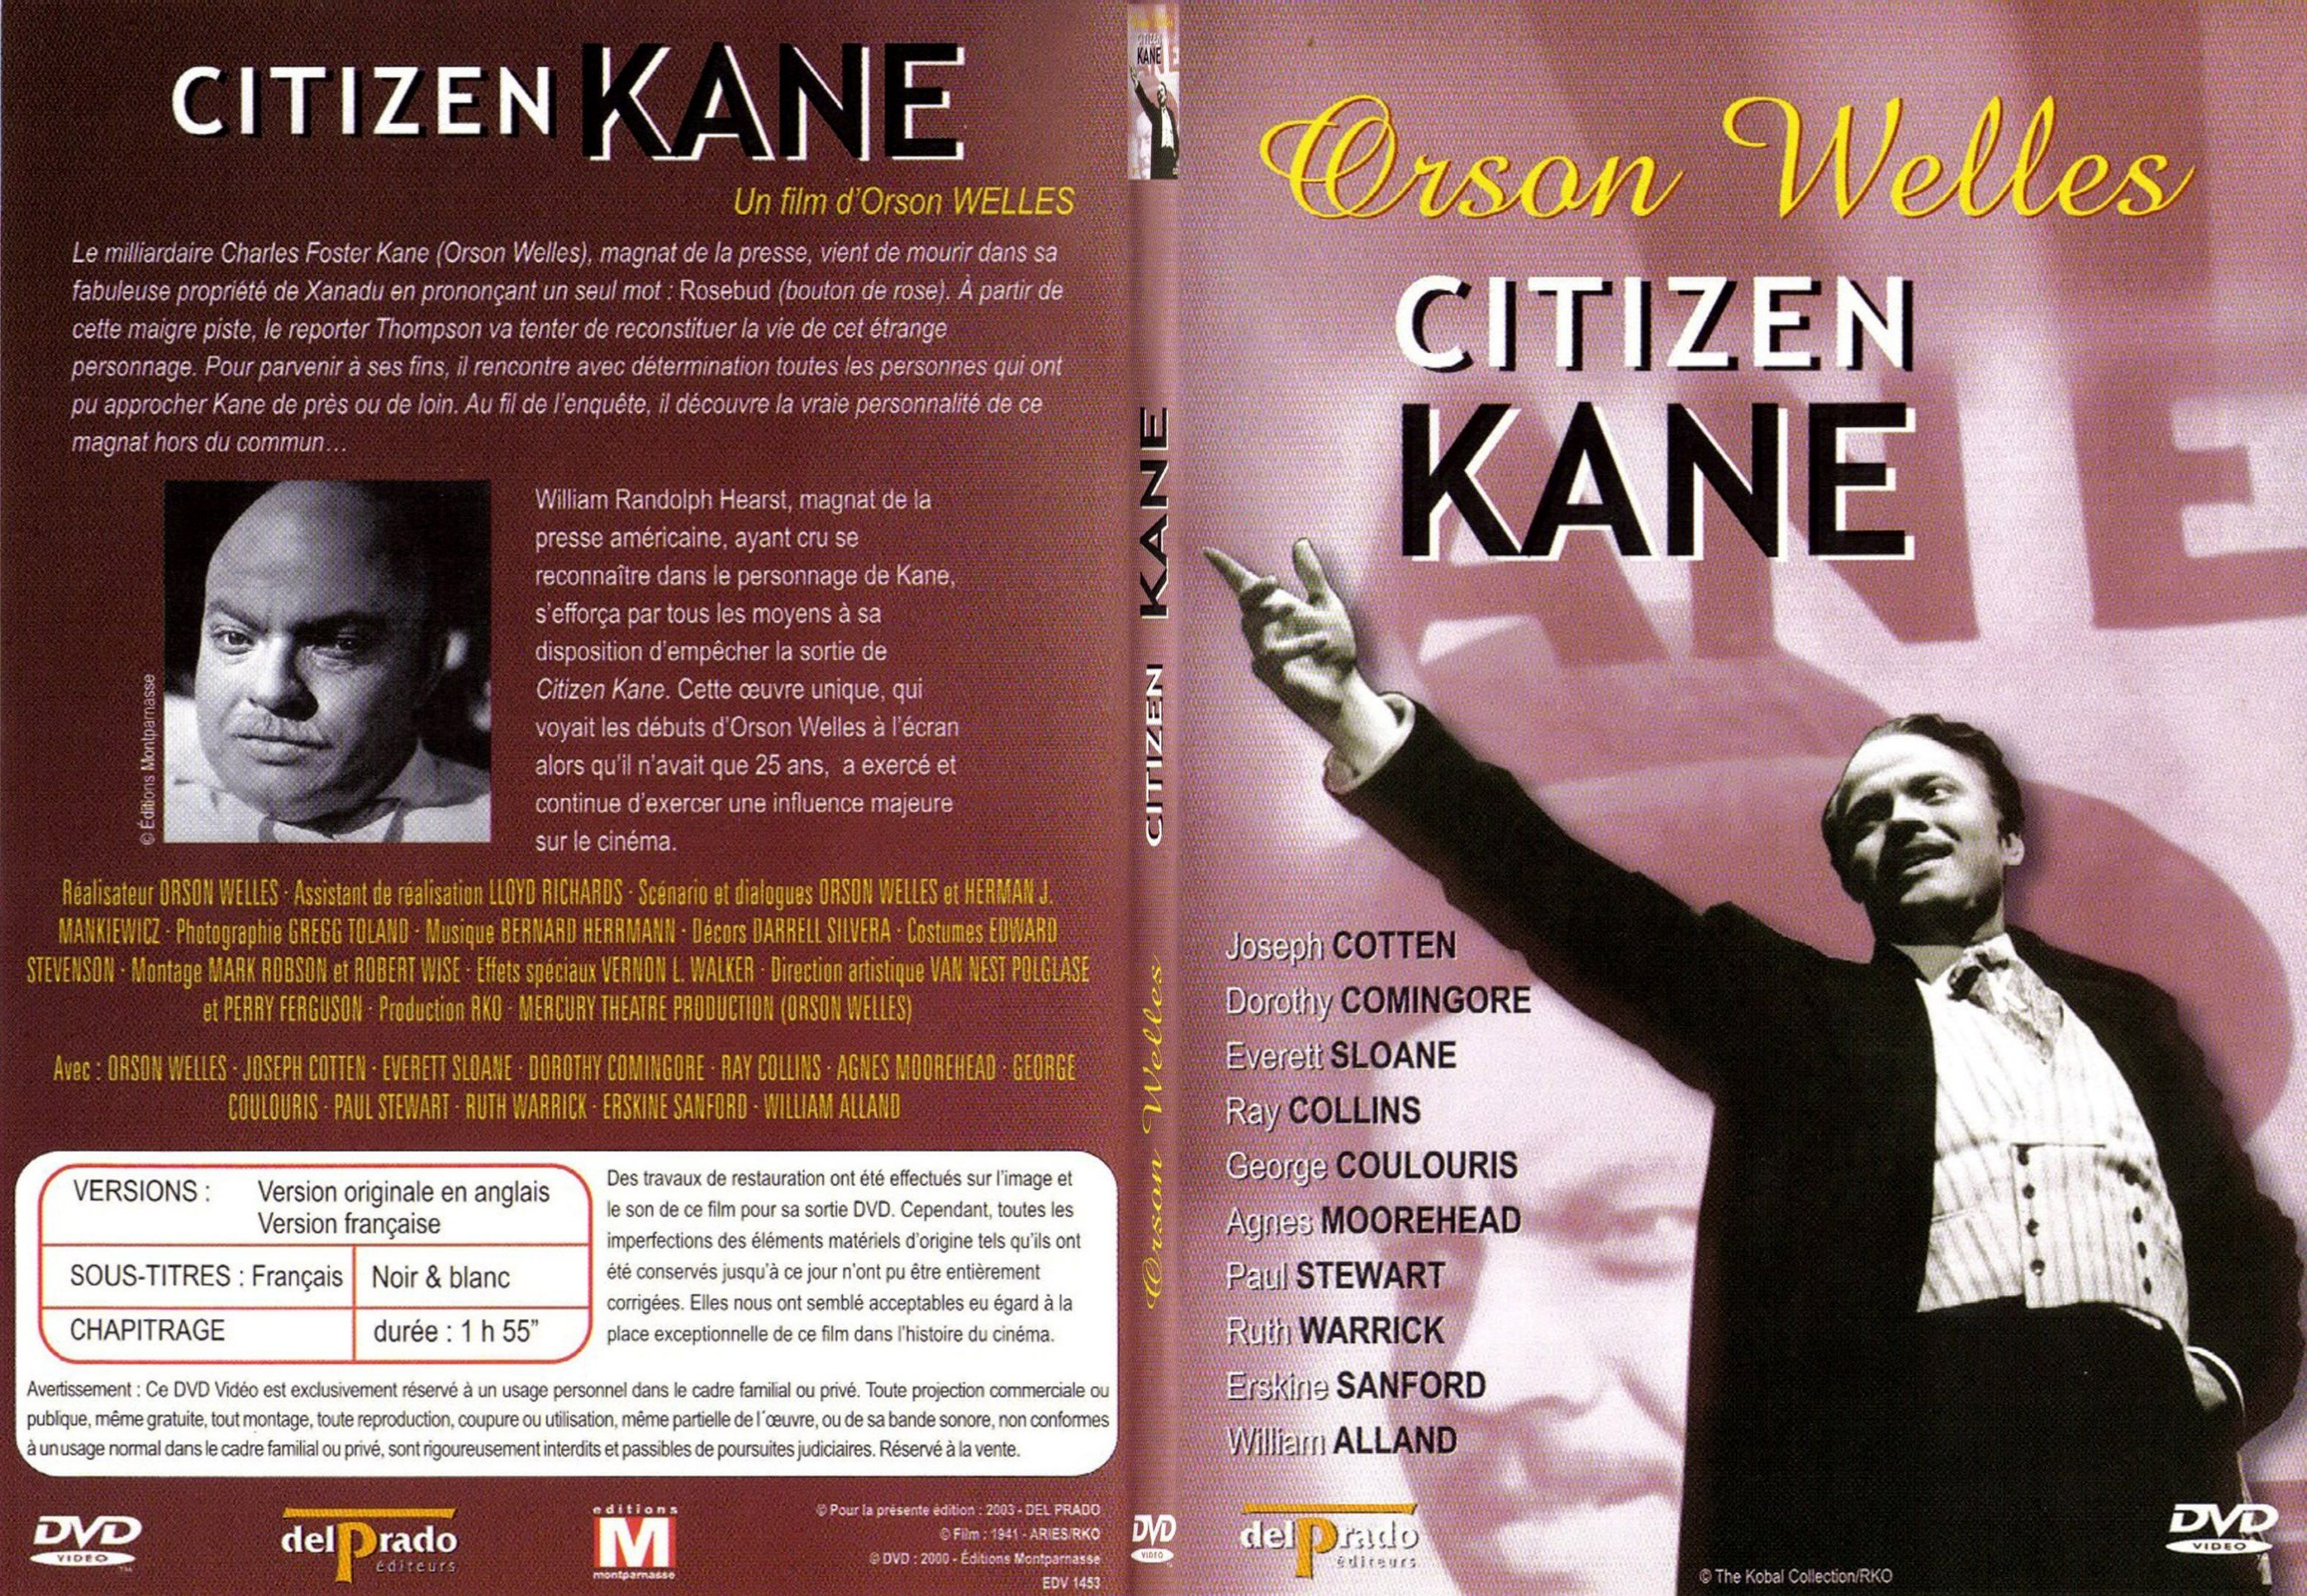 a review of the movie citizen kane by orson welles